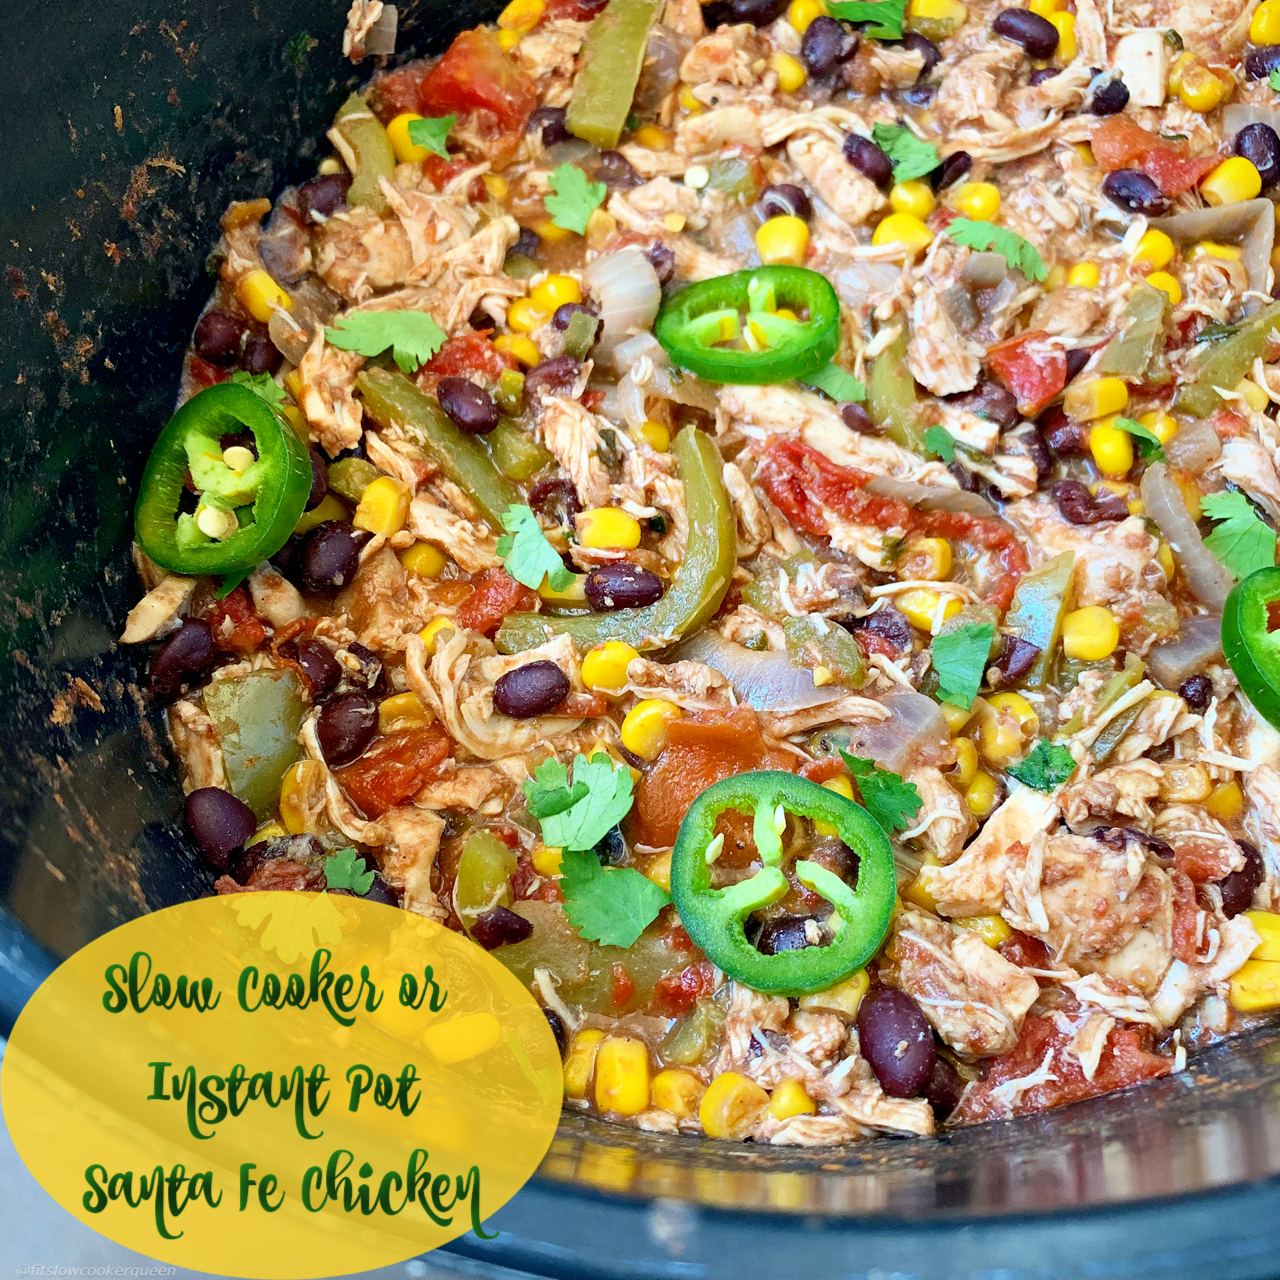 Santa Fe chicken is an easy and flavorful TexMex inspired recipe that can be made in your slow cooker or Instant Pot.